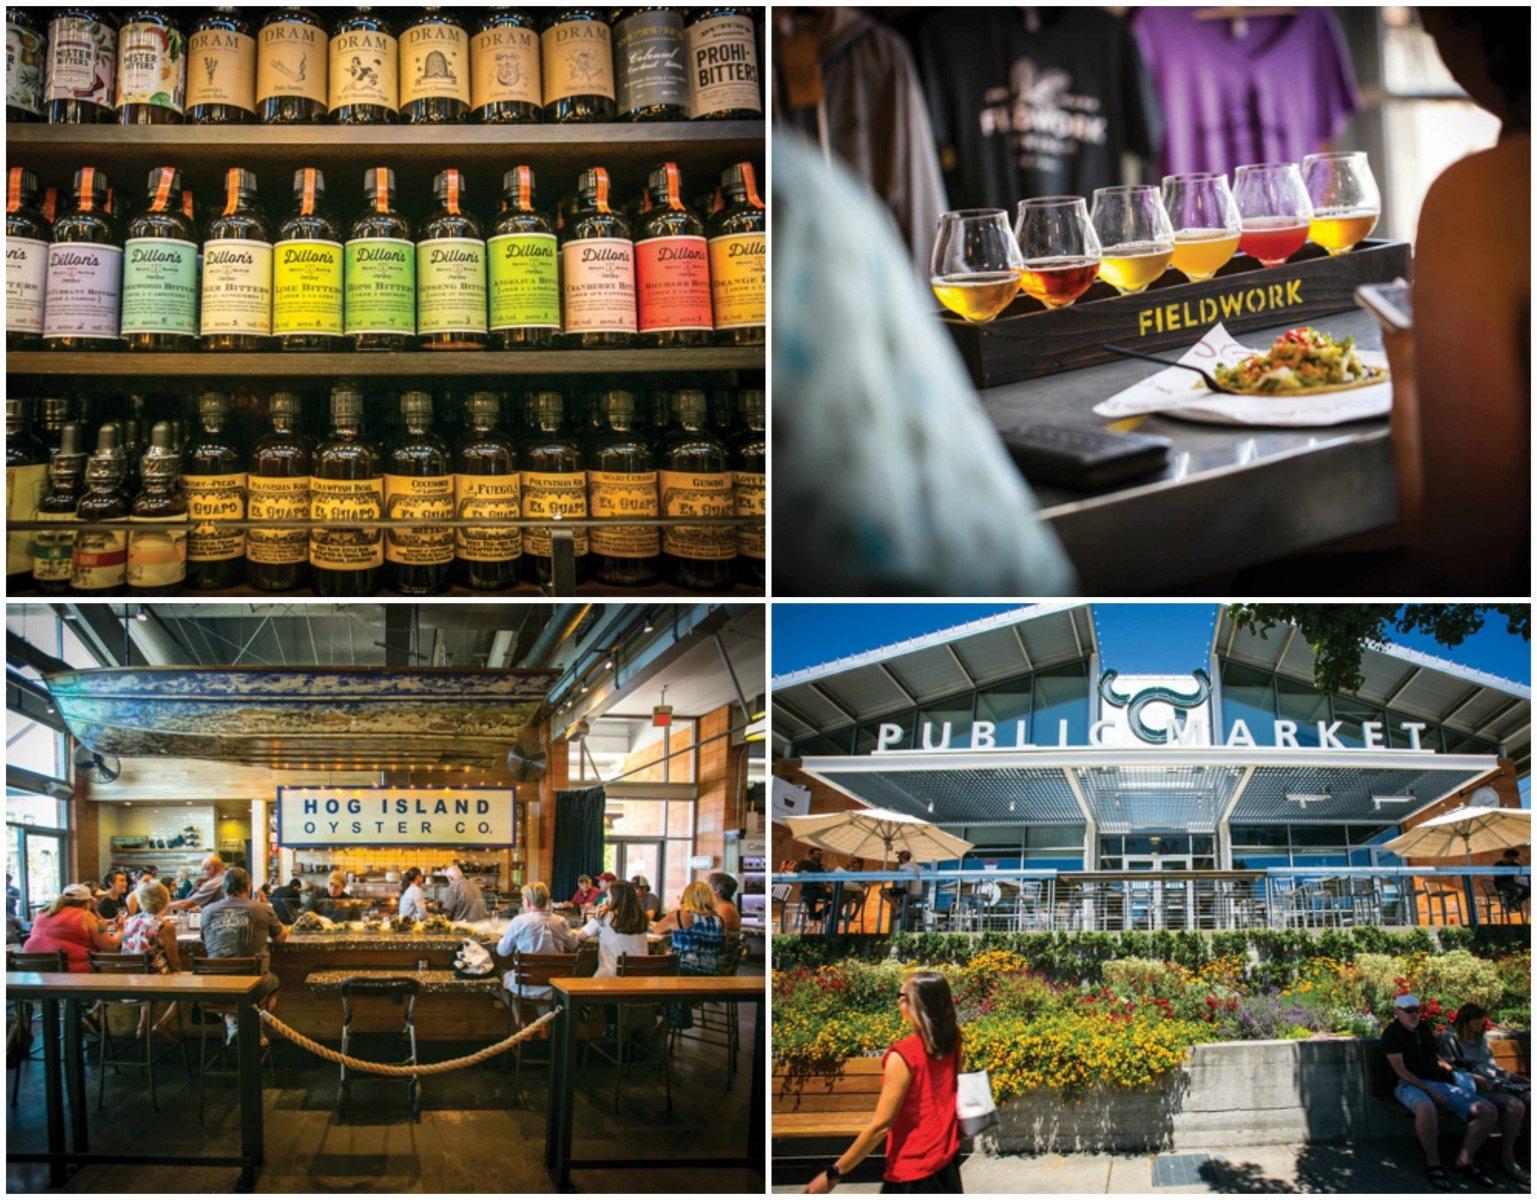 At Oxbow Public Market, you can sample over 100 varieties of bitters at Napa Valley Distillery, try a flight of beer at Fieldwork Brewing Co.'s taproom, go for seafood at Hog Island Oyster Co., and more. (Photos by Jeremy Sykes)